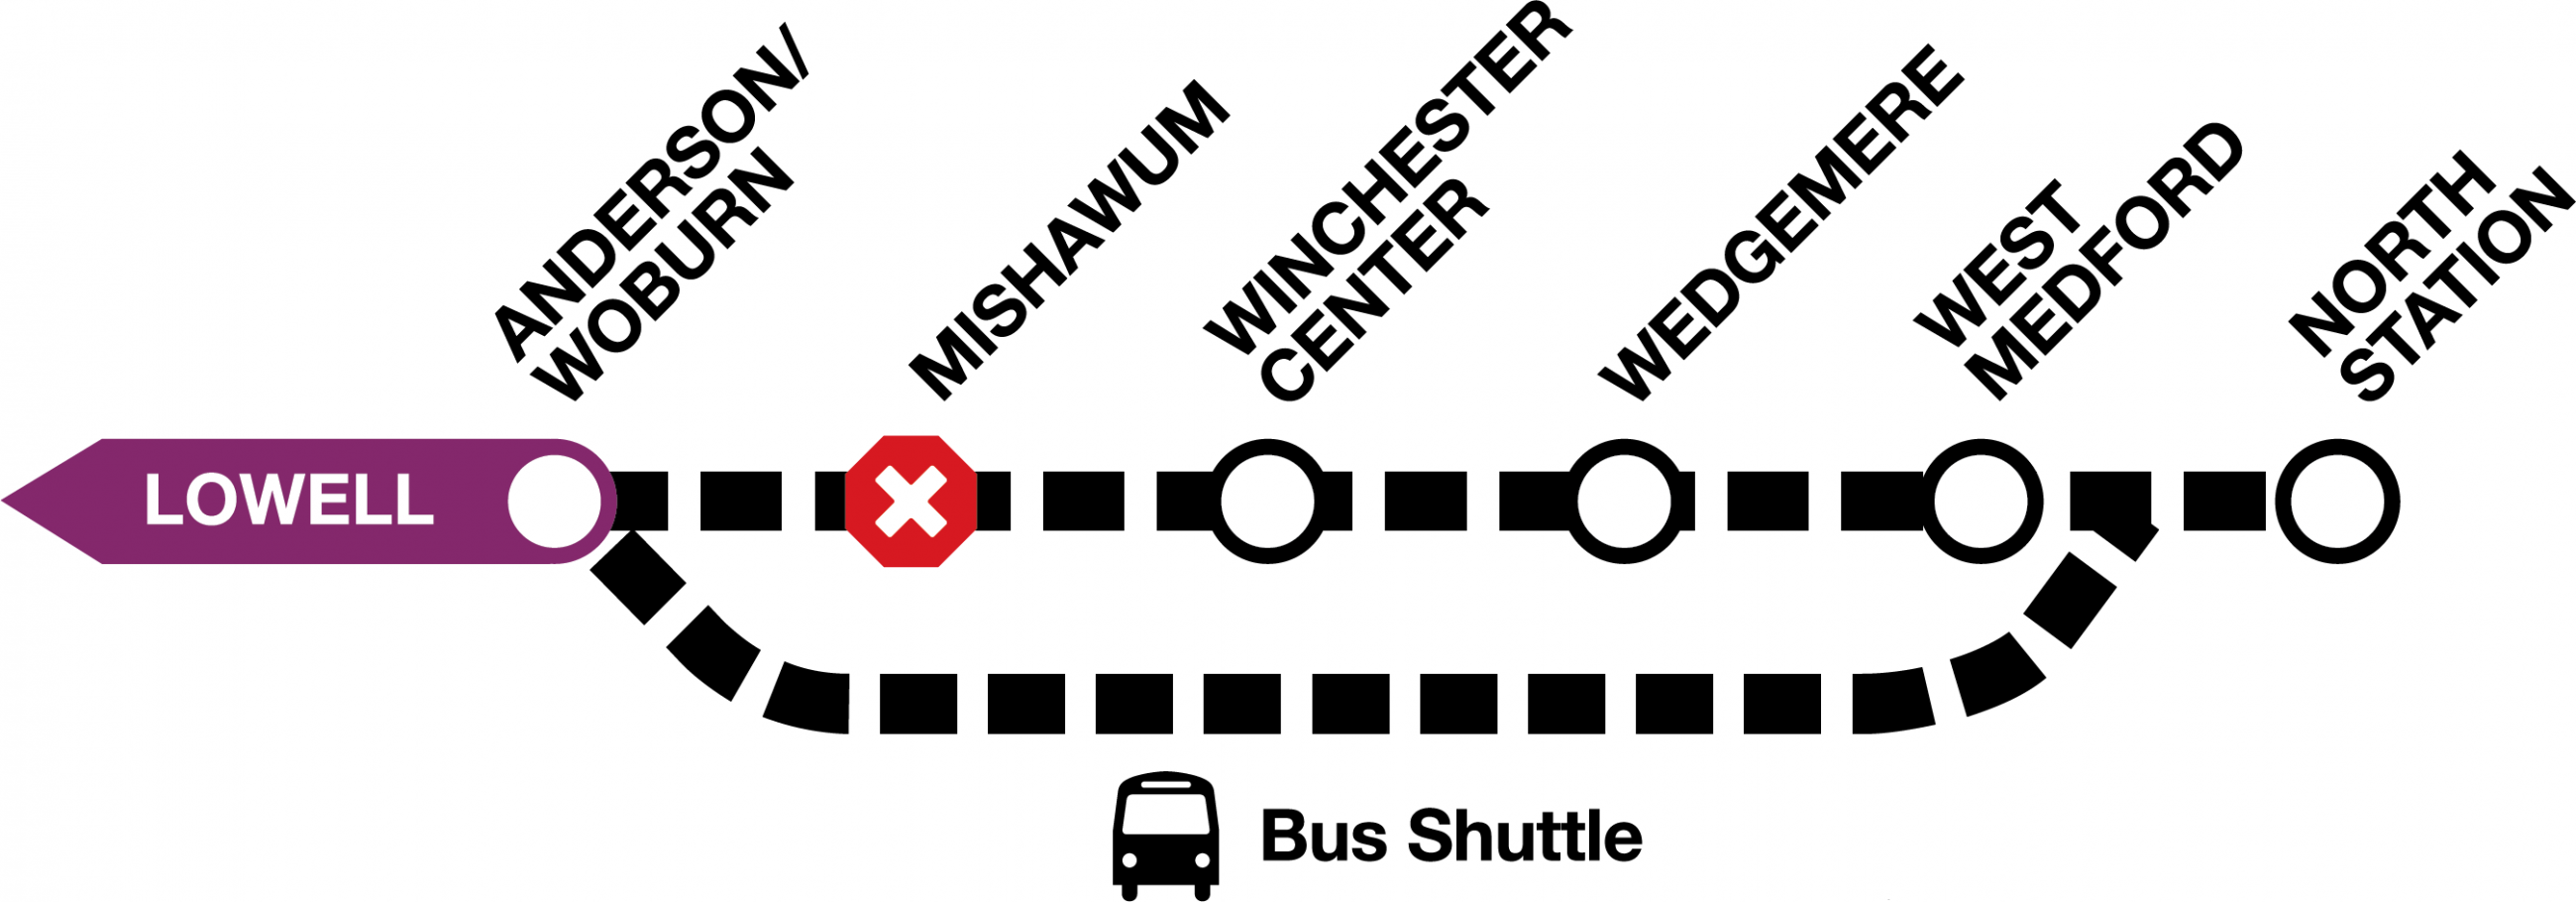 north-station-anderson-woburn-shuttle